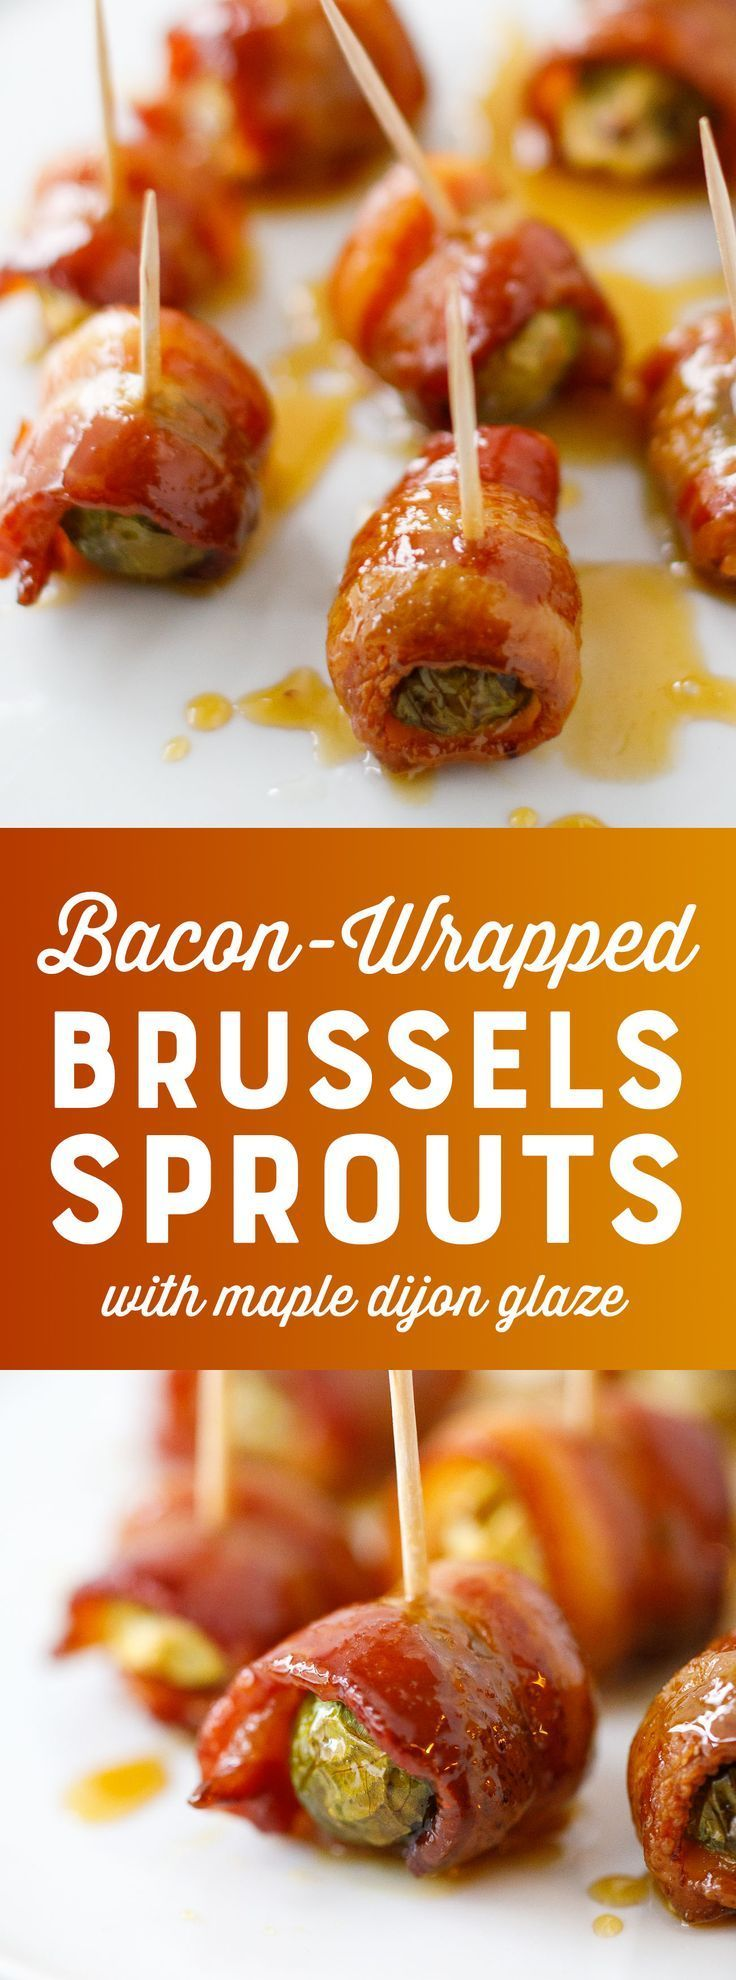 Bacon-Wrapped Brussels Sprouts with Maple Dijon Glaze Appetizer